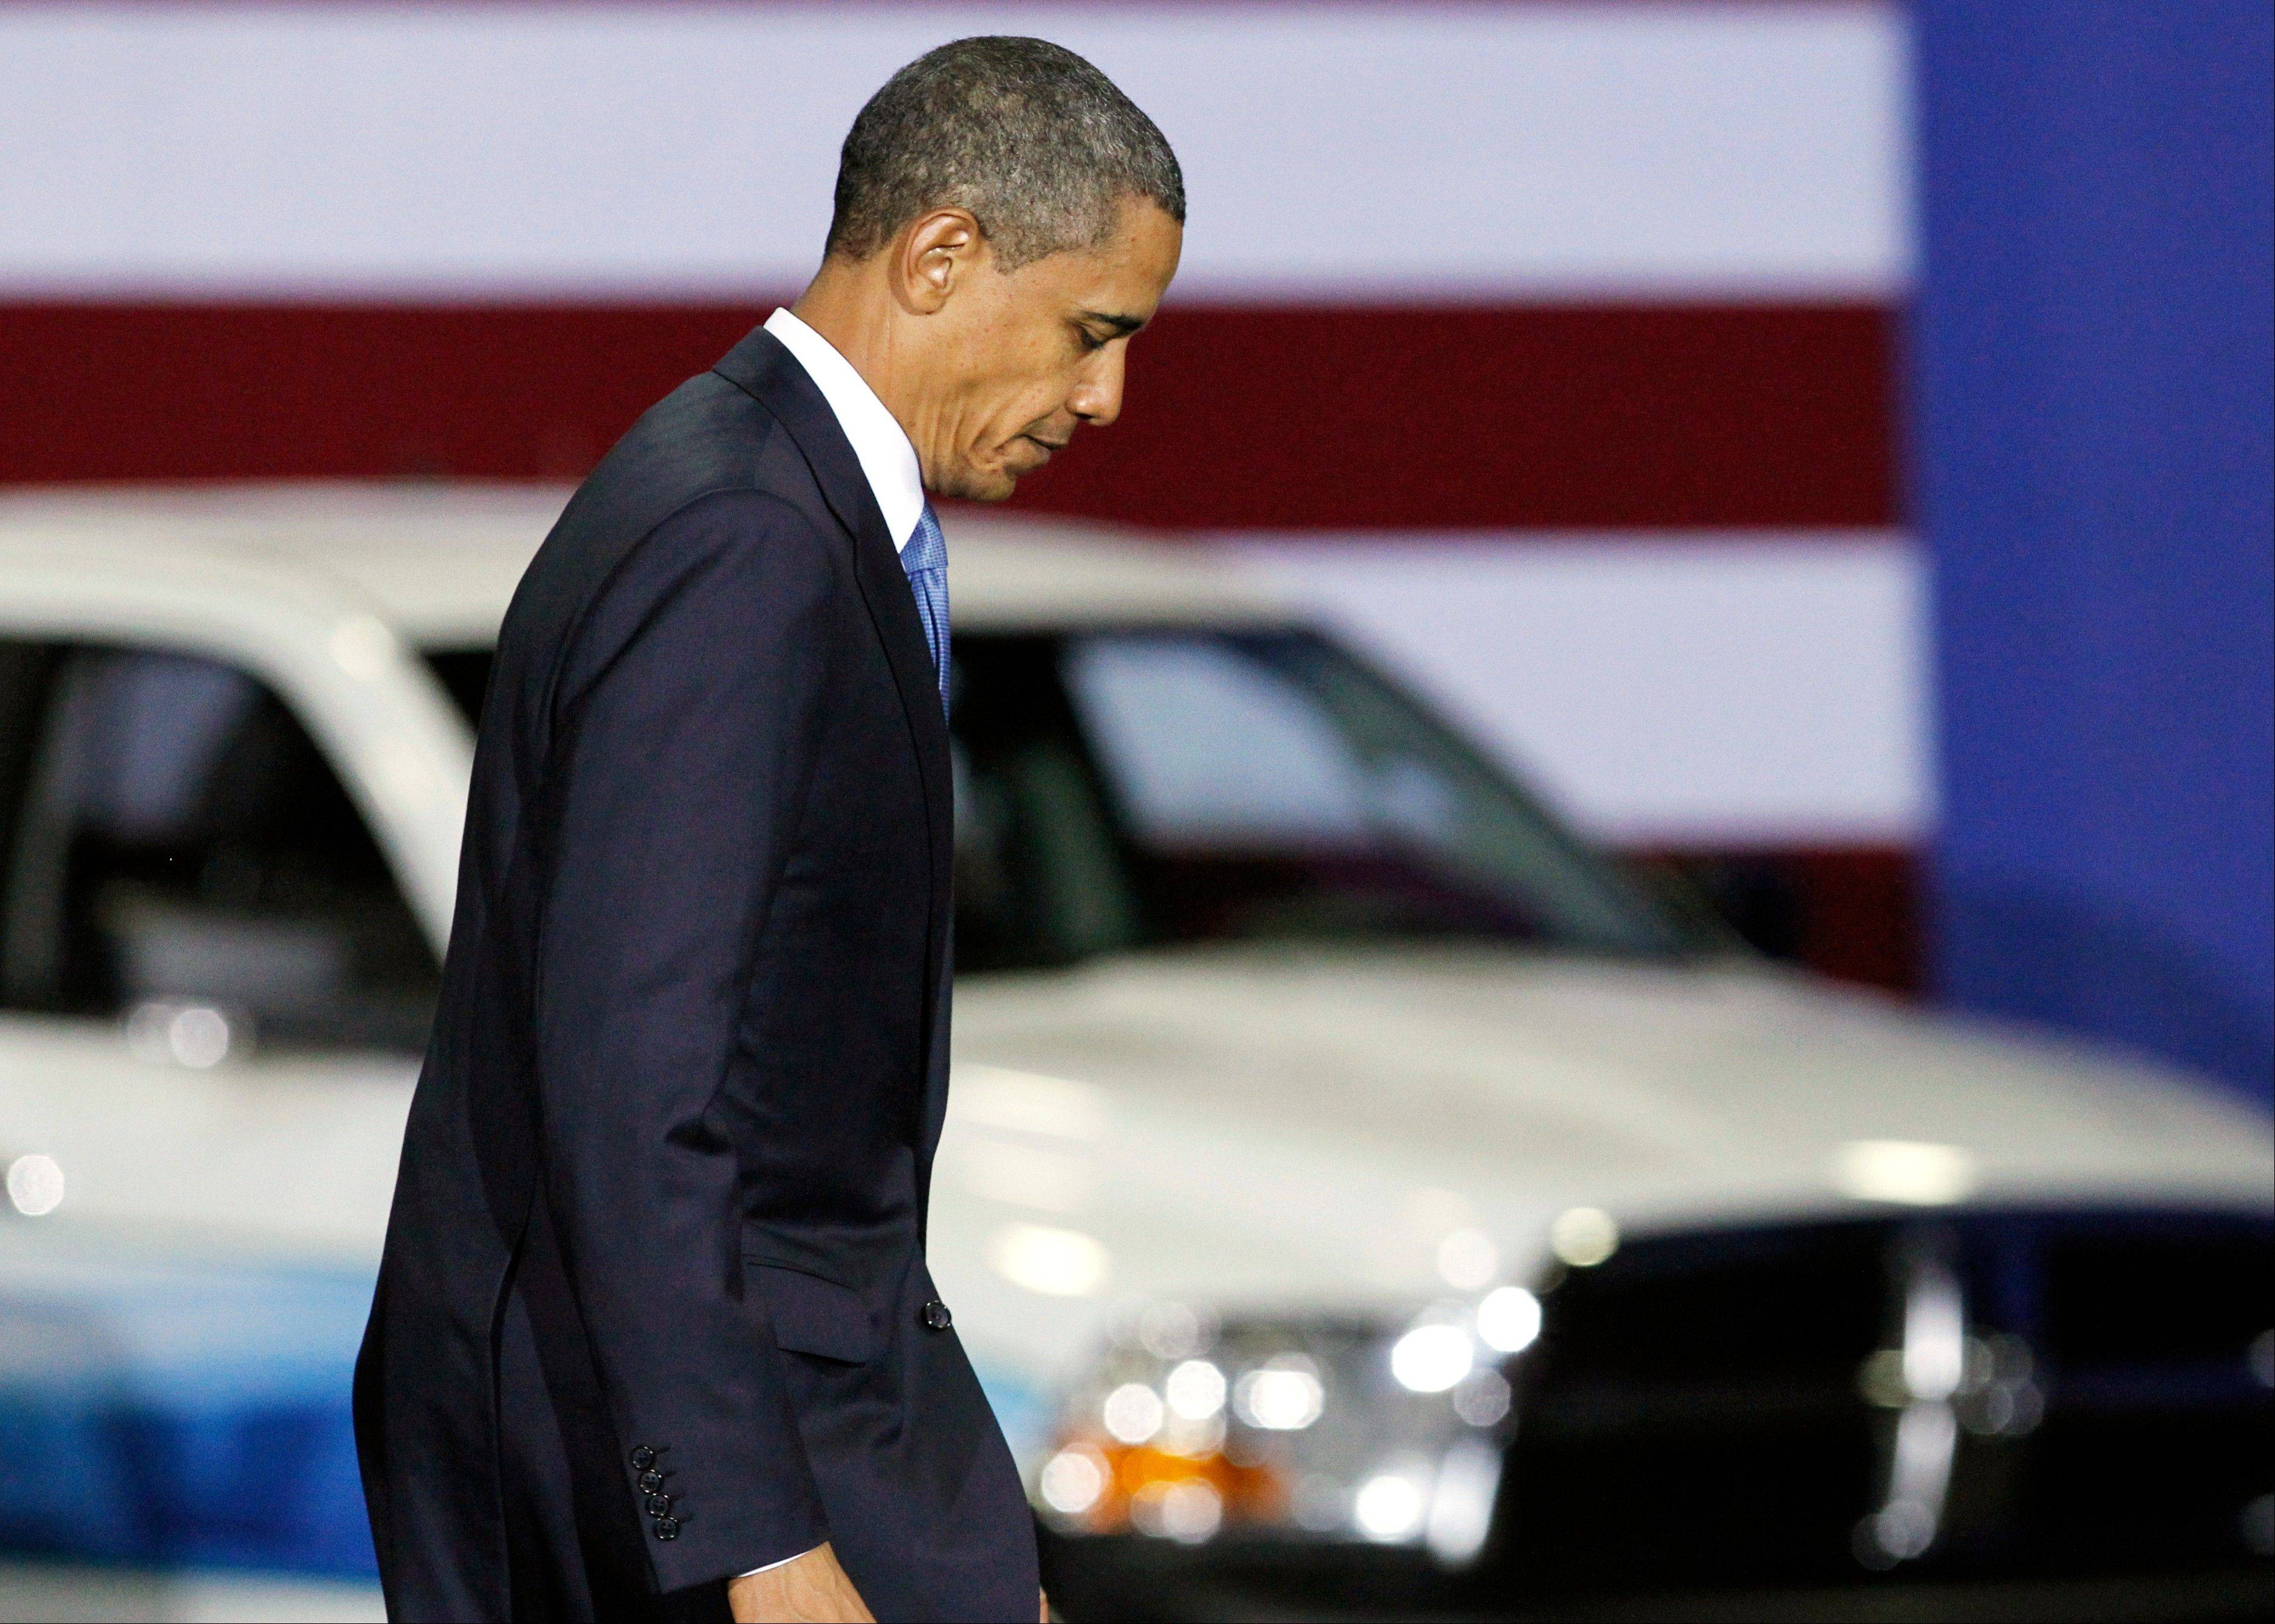 President Barack Obama walks down a ramp after delivering a speech at a gathering where he announced new fuel efficiency standards for cars and light trucks at the Washington Convention Center in Washington.